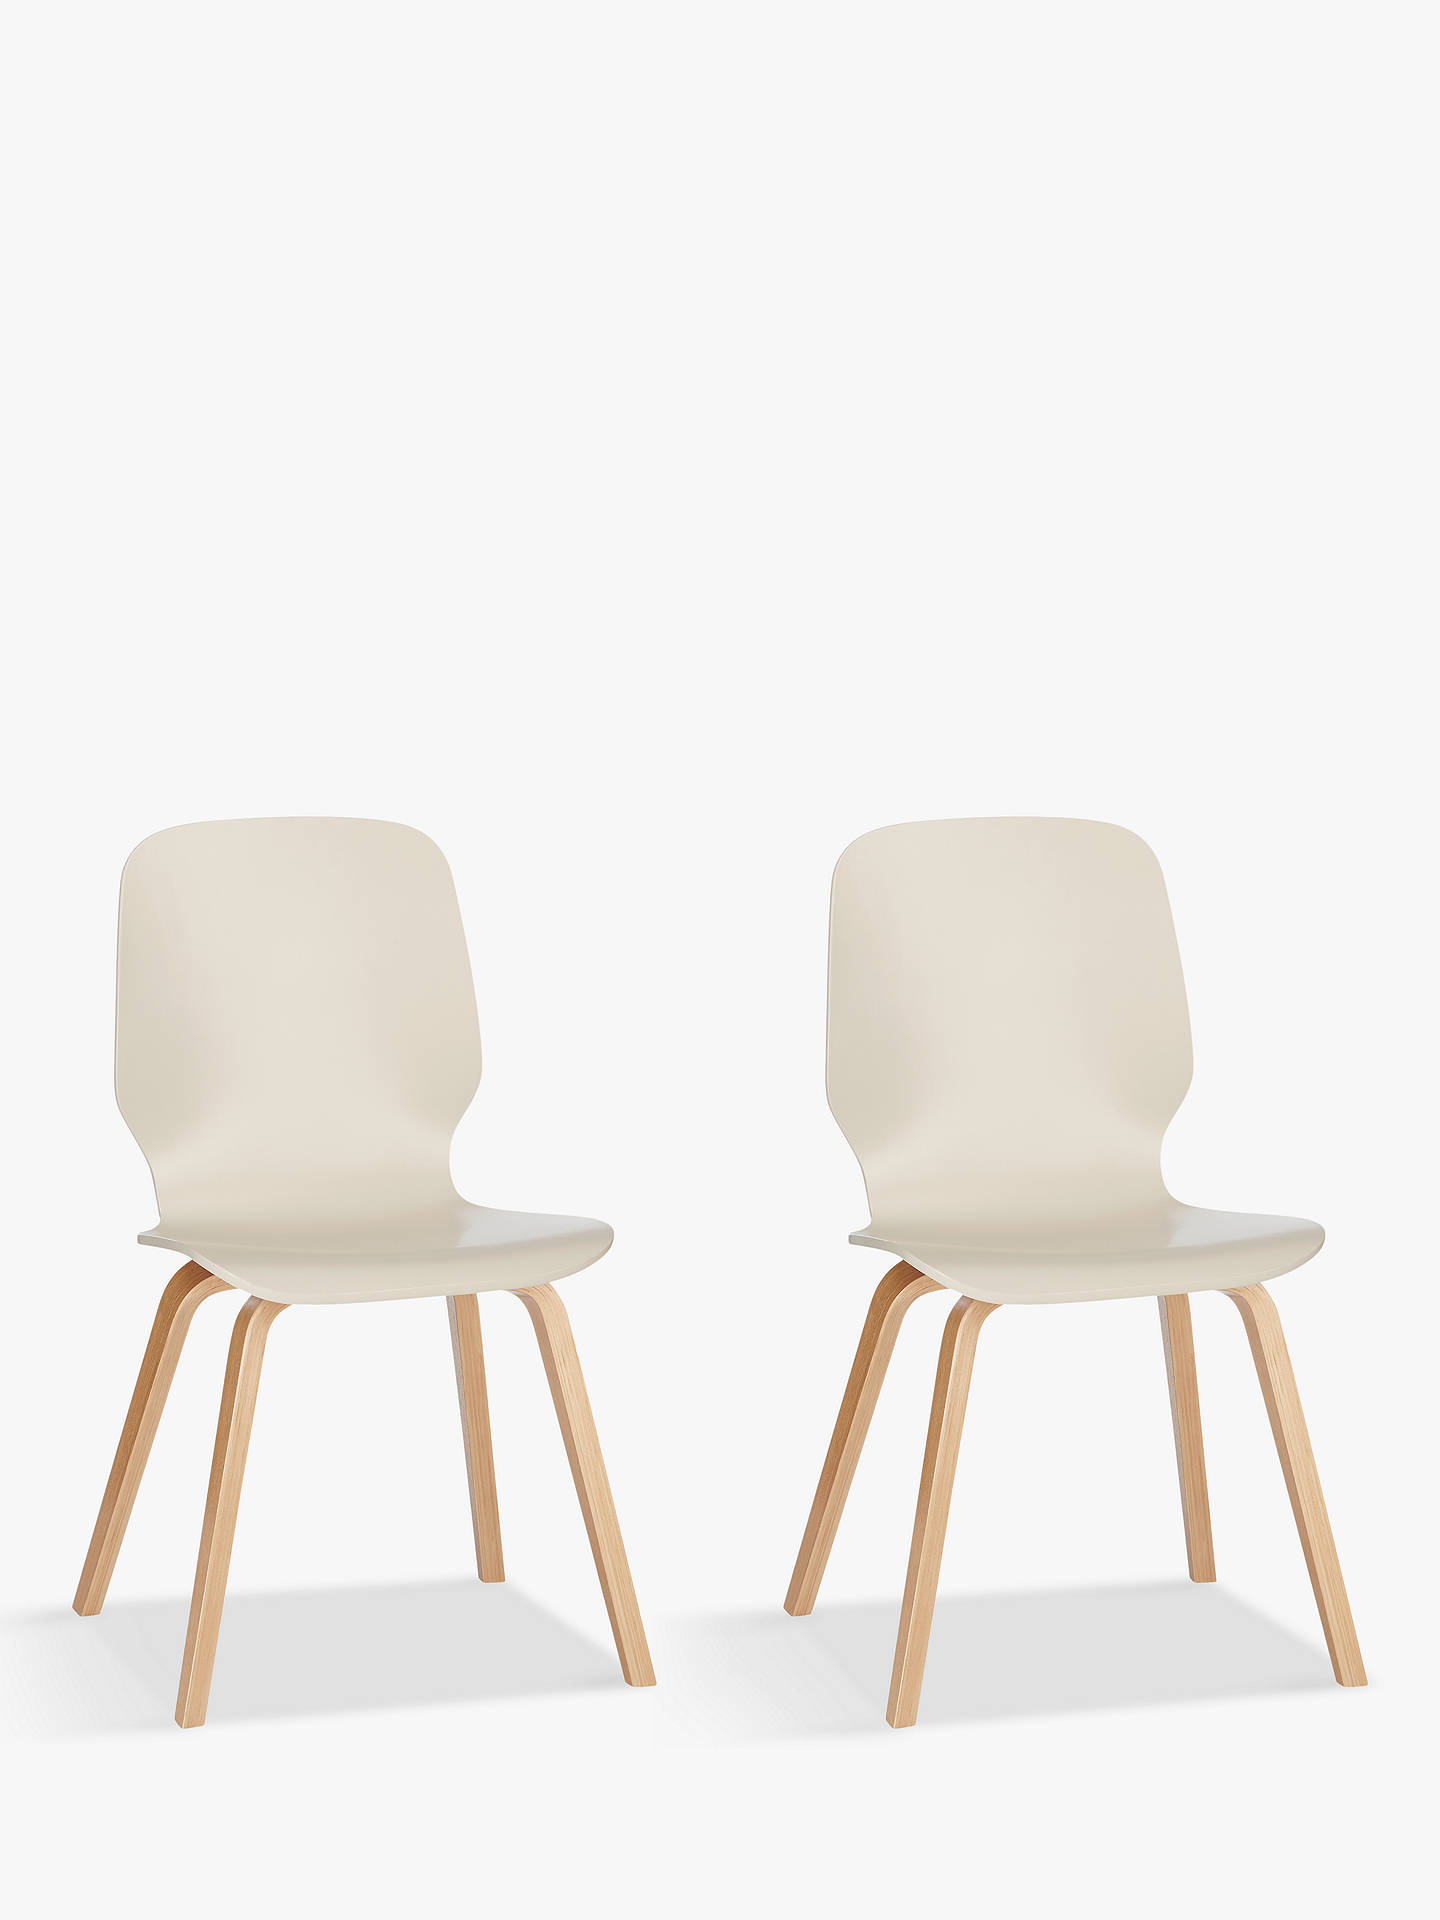 Buy House by John Lewis Anton Dining Chairs, Set of 2, Smoke Online at johnlewis.com